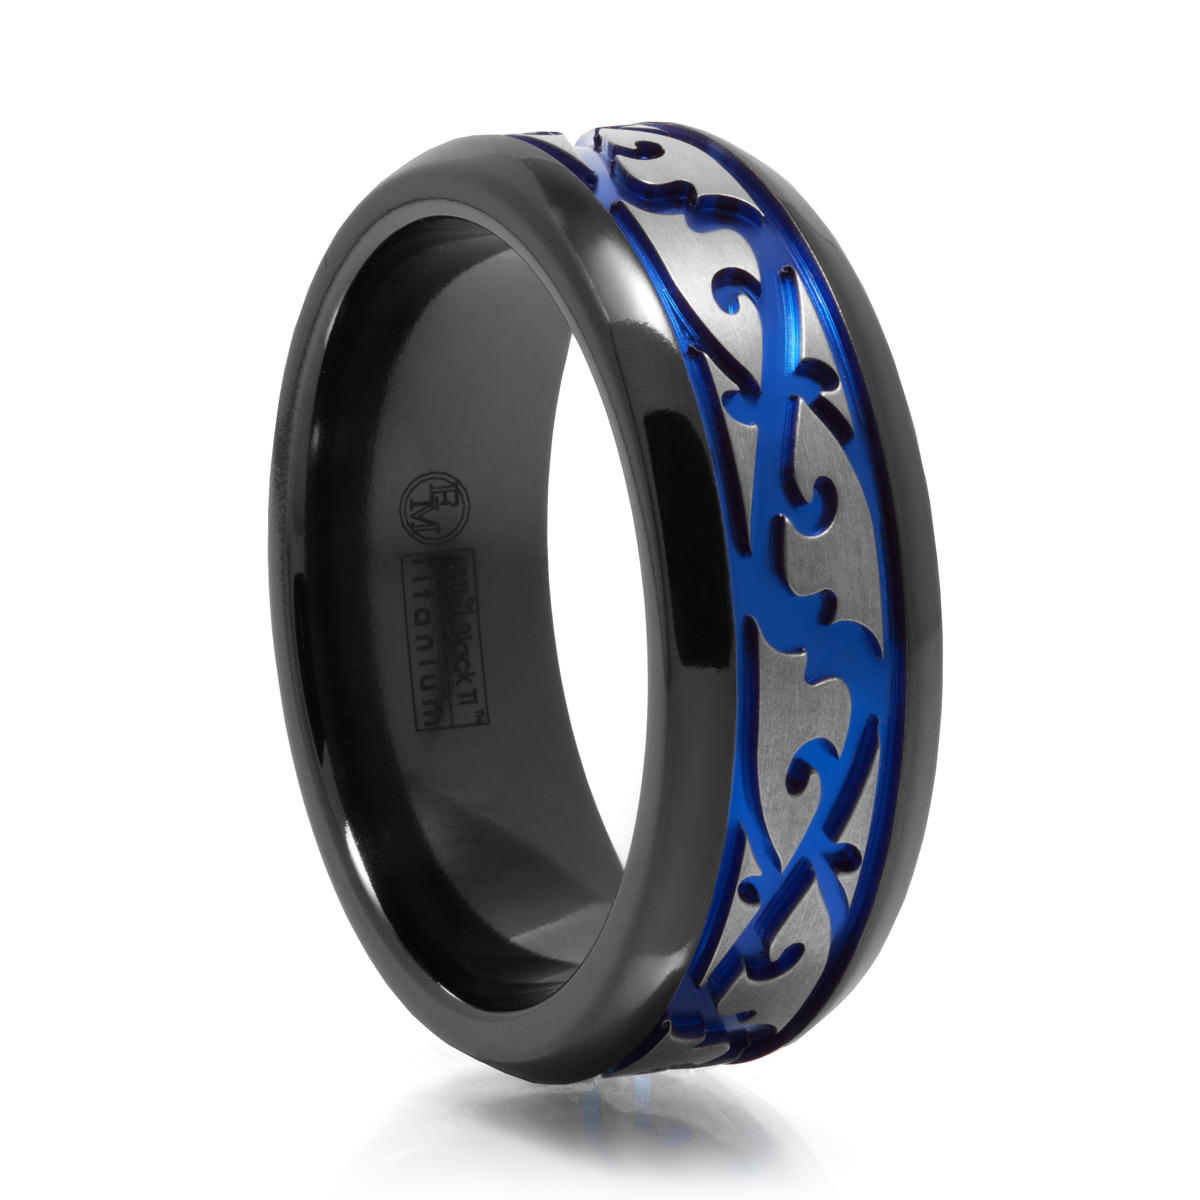 black brief item design ring punk fashion jewellery titanium wedding men engagement stainless rings steel